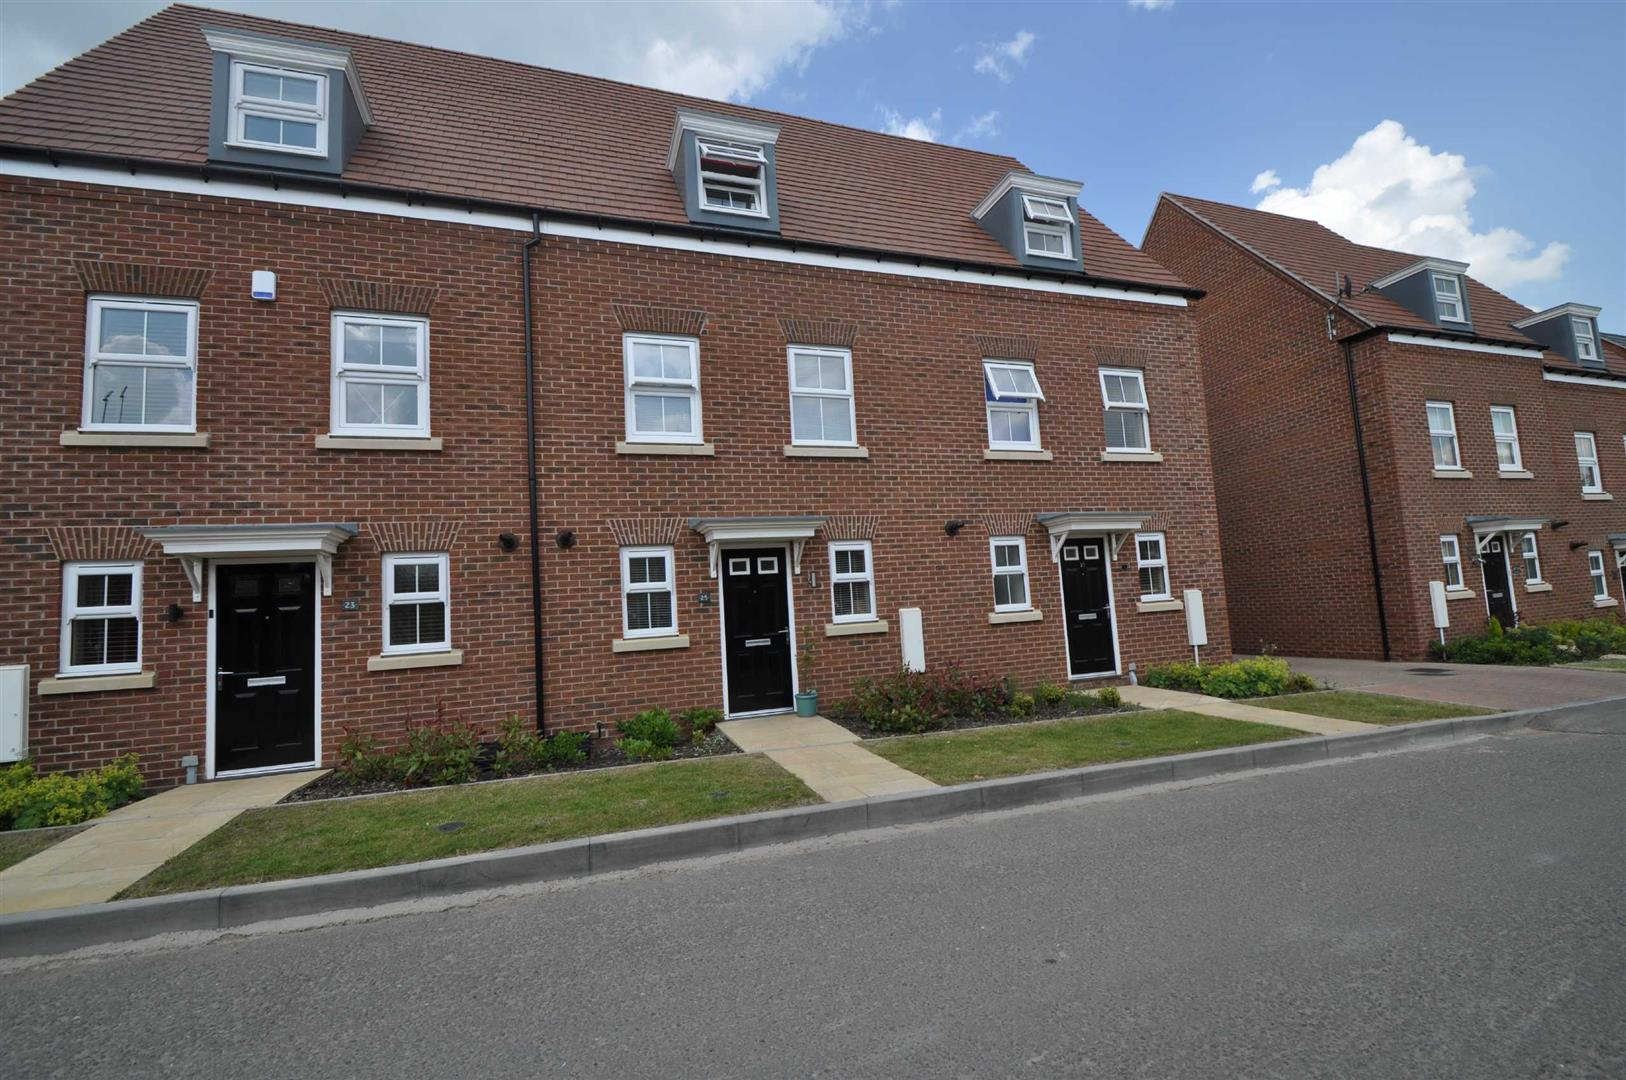 3 Bedrooms Terraced House for rent in Lawley Way, Droitwich Spa